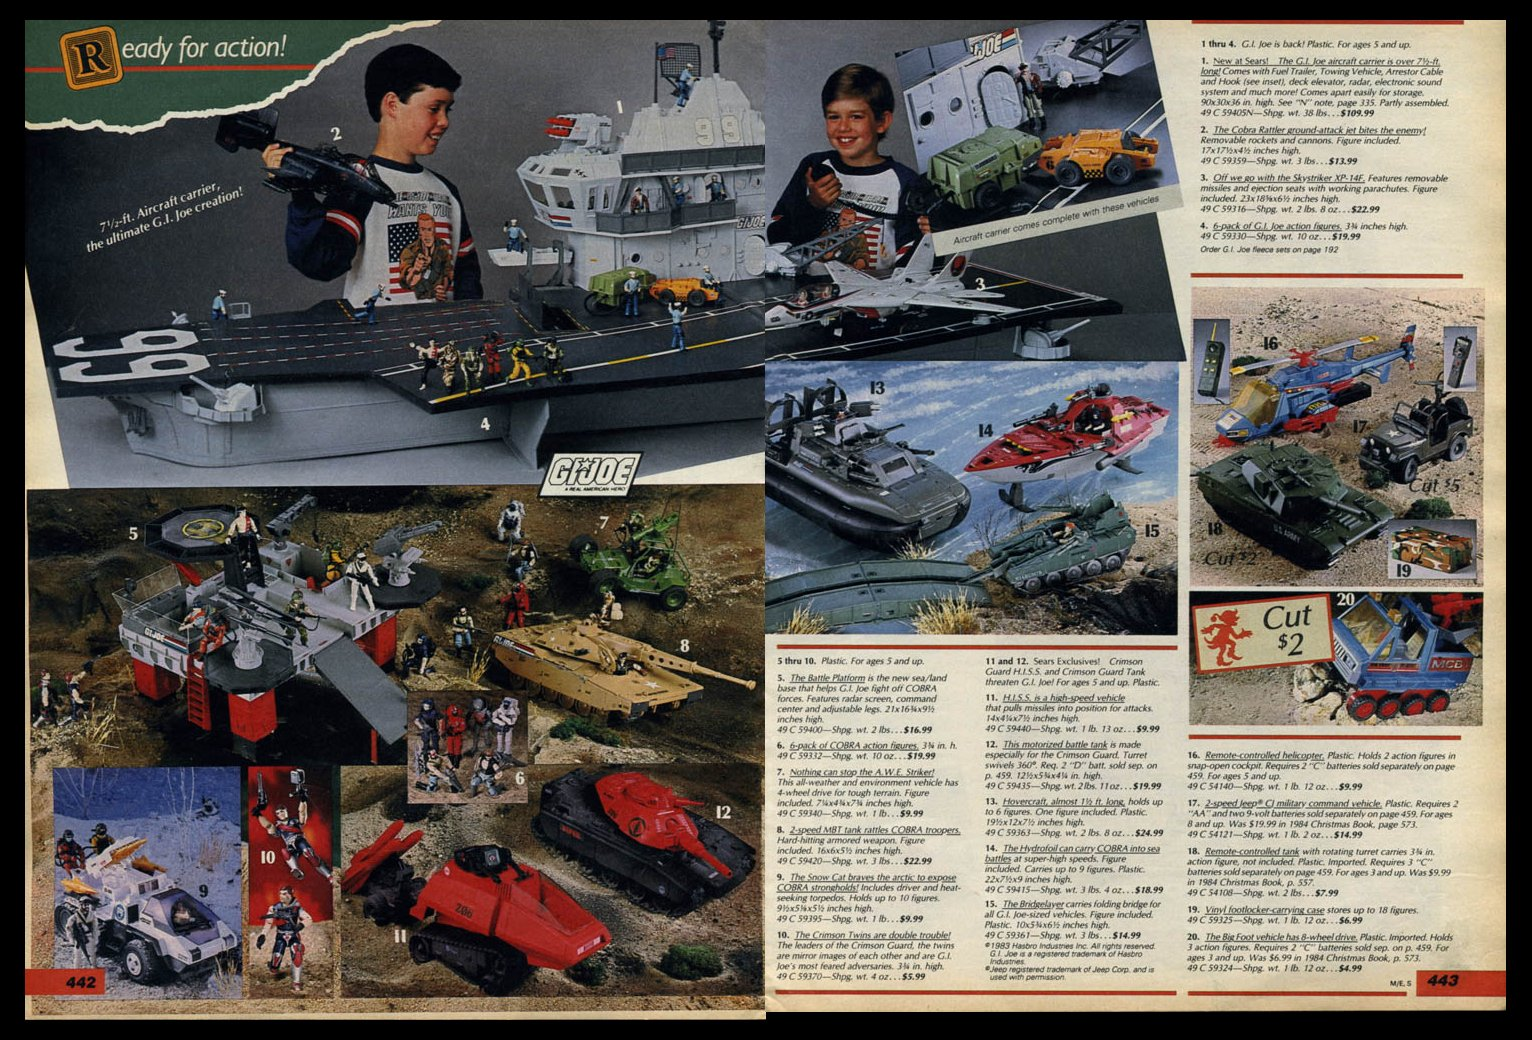 sears christmas catalog 1985 - Sears Christmas Catalog